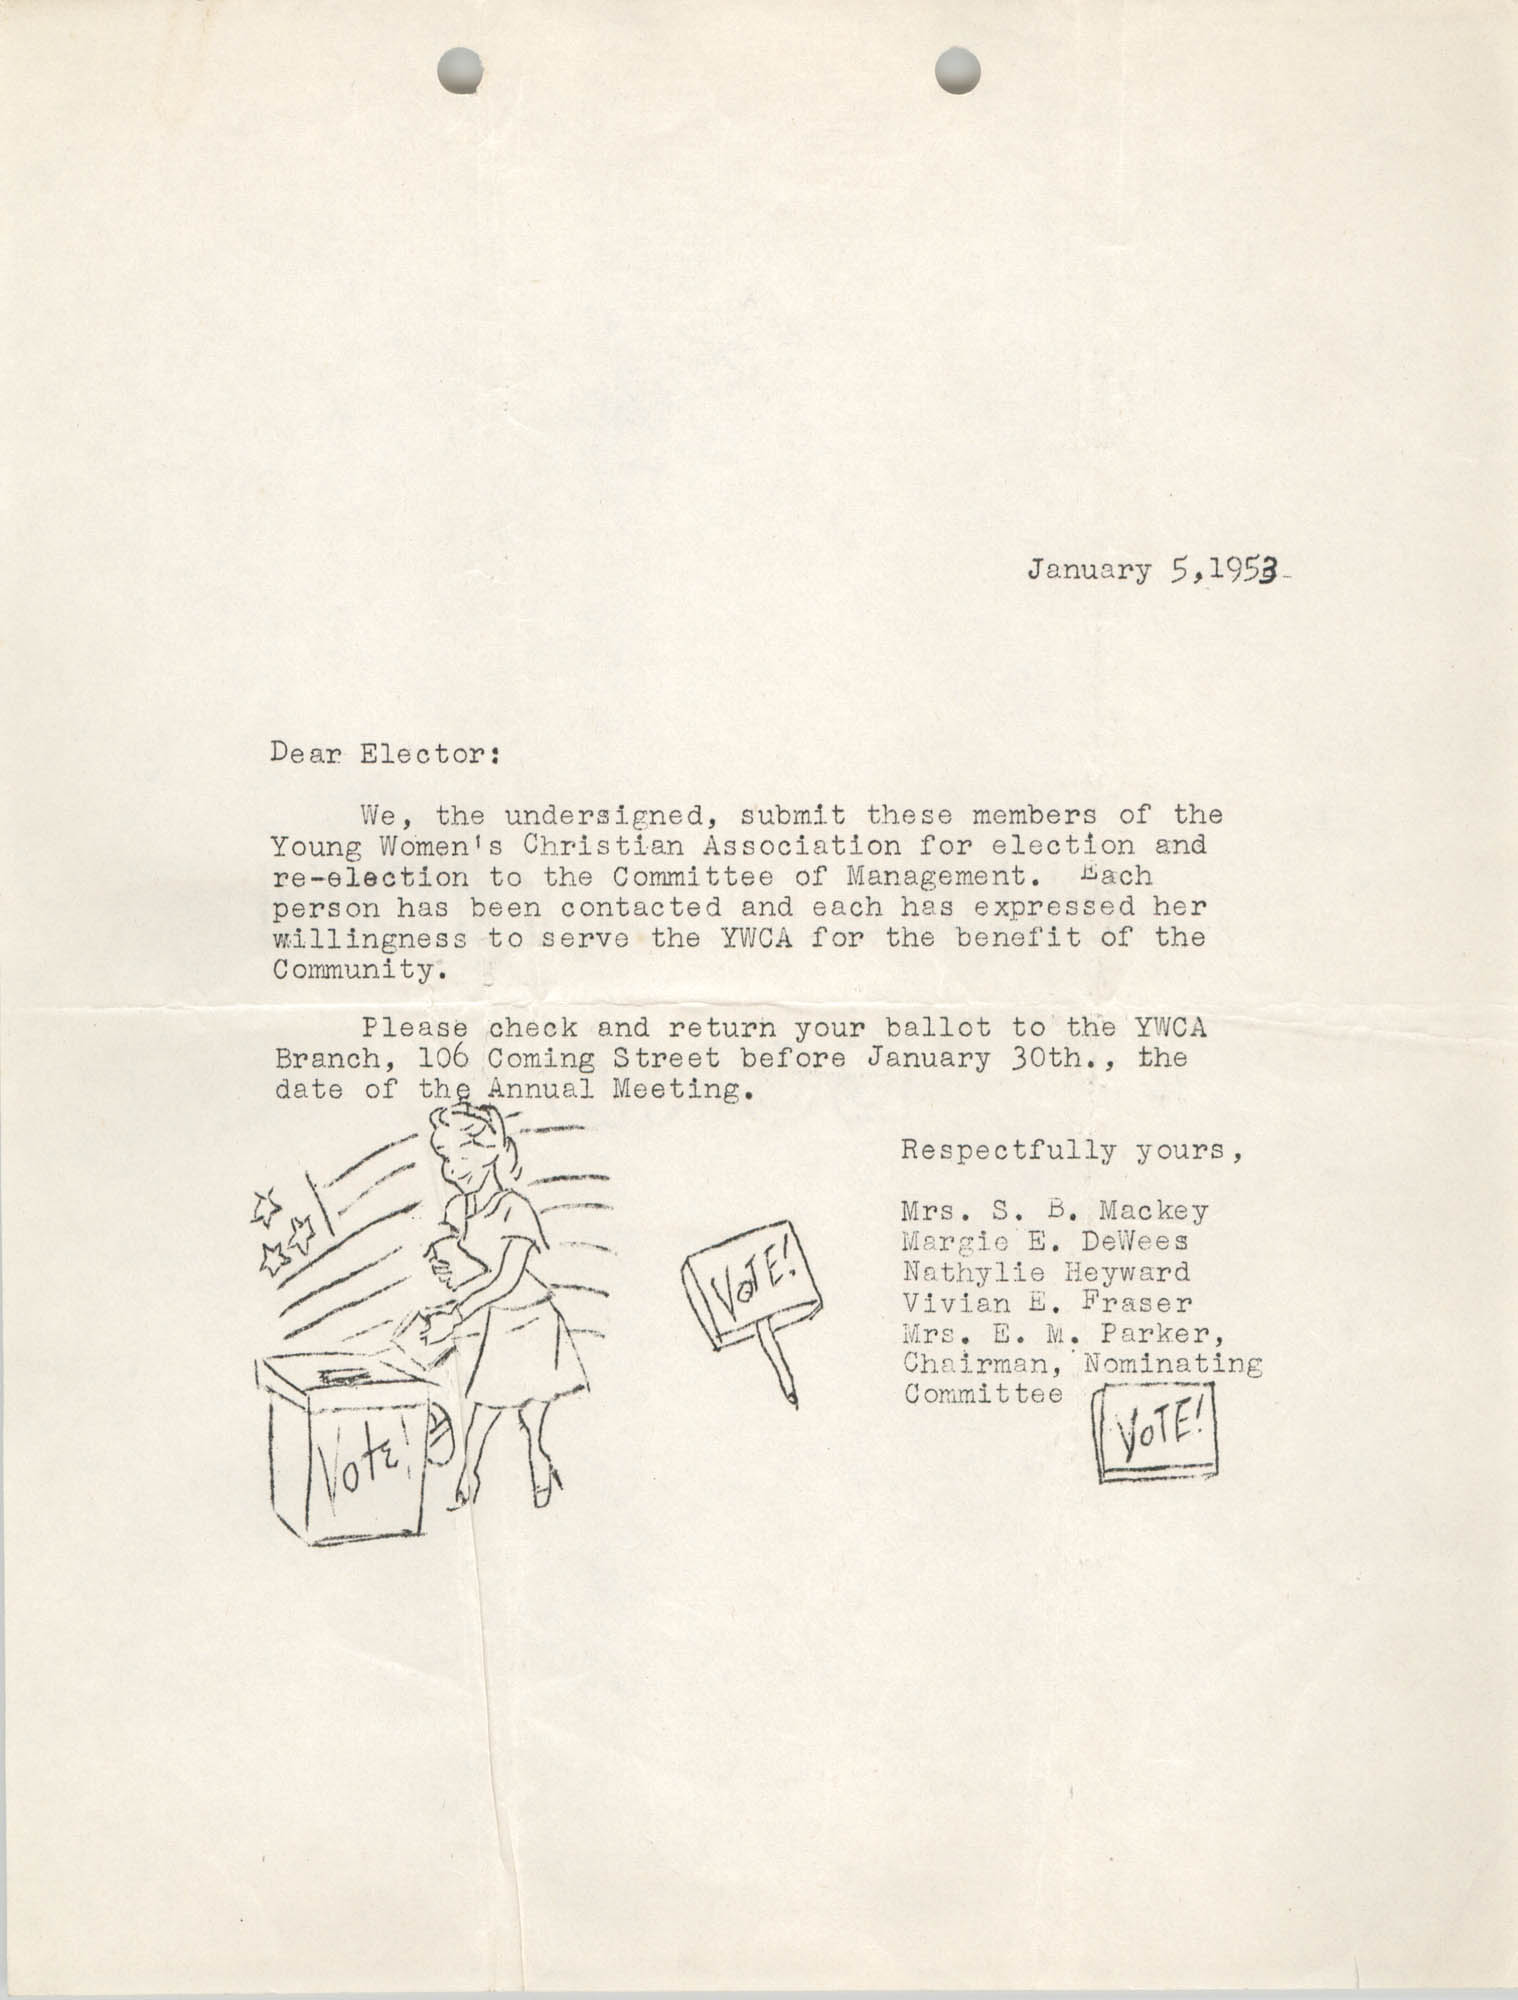 Letter from Y.W.C.A. Members to Electors, January 5, 1953